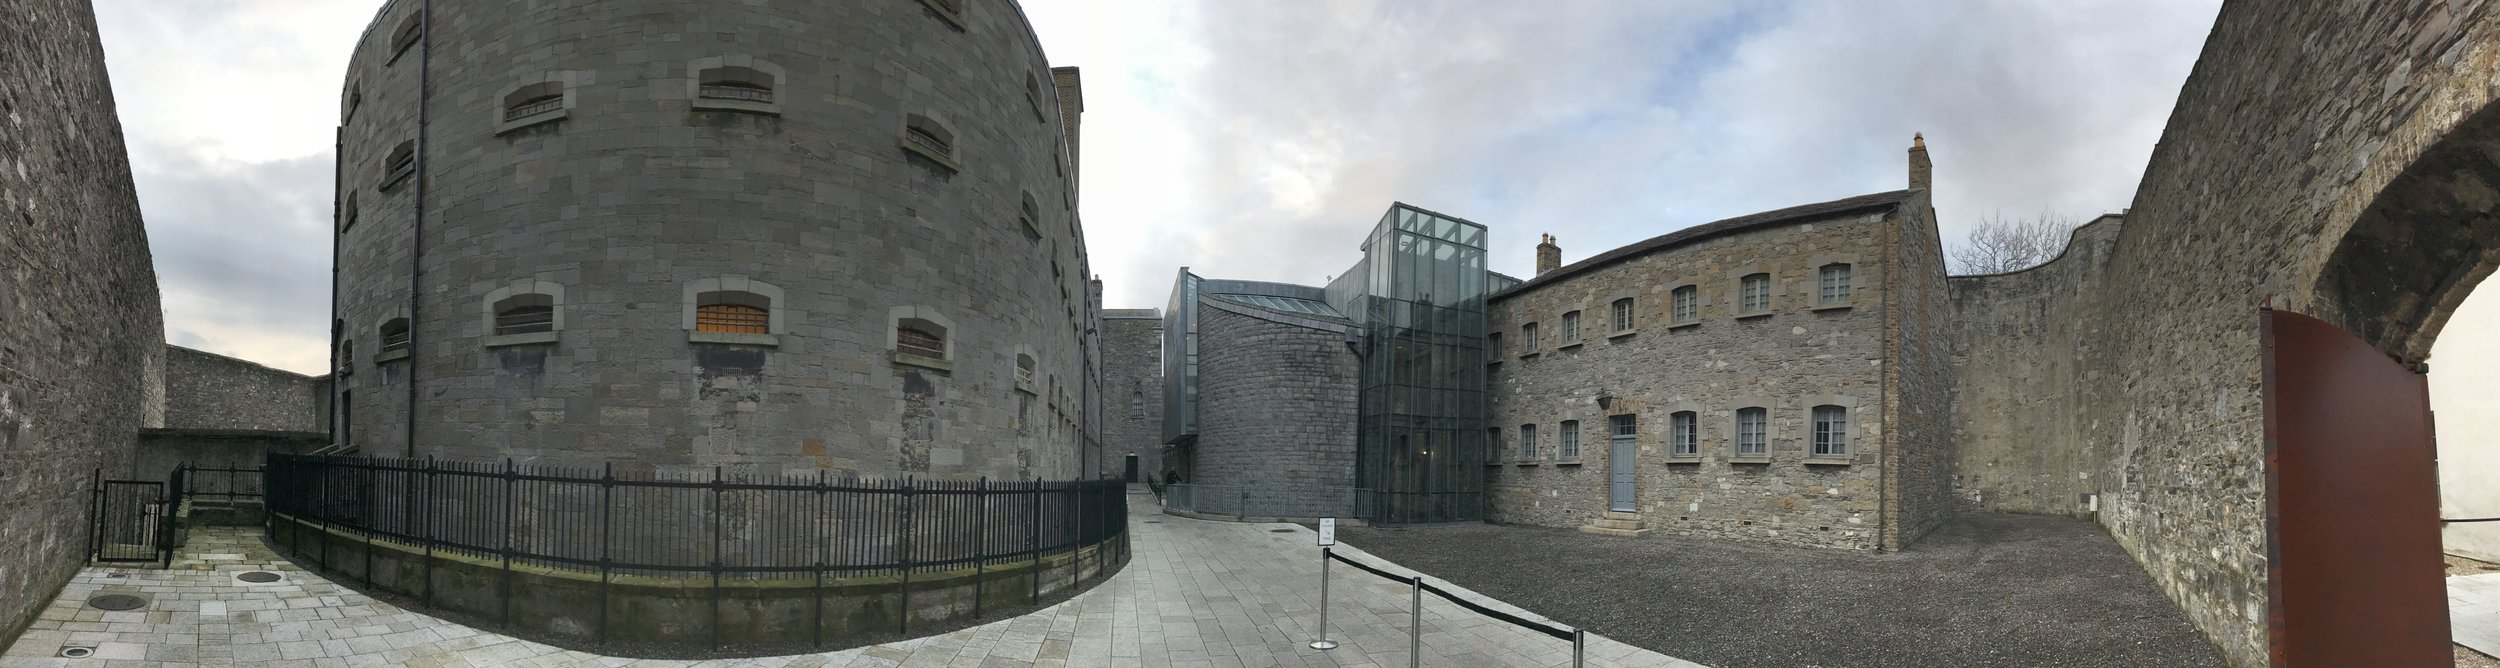 Kilmainham Gaol is the largest unoccupied prison in Europe, and is now a museum that covers the seminal moments in Irish history.